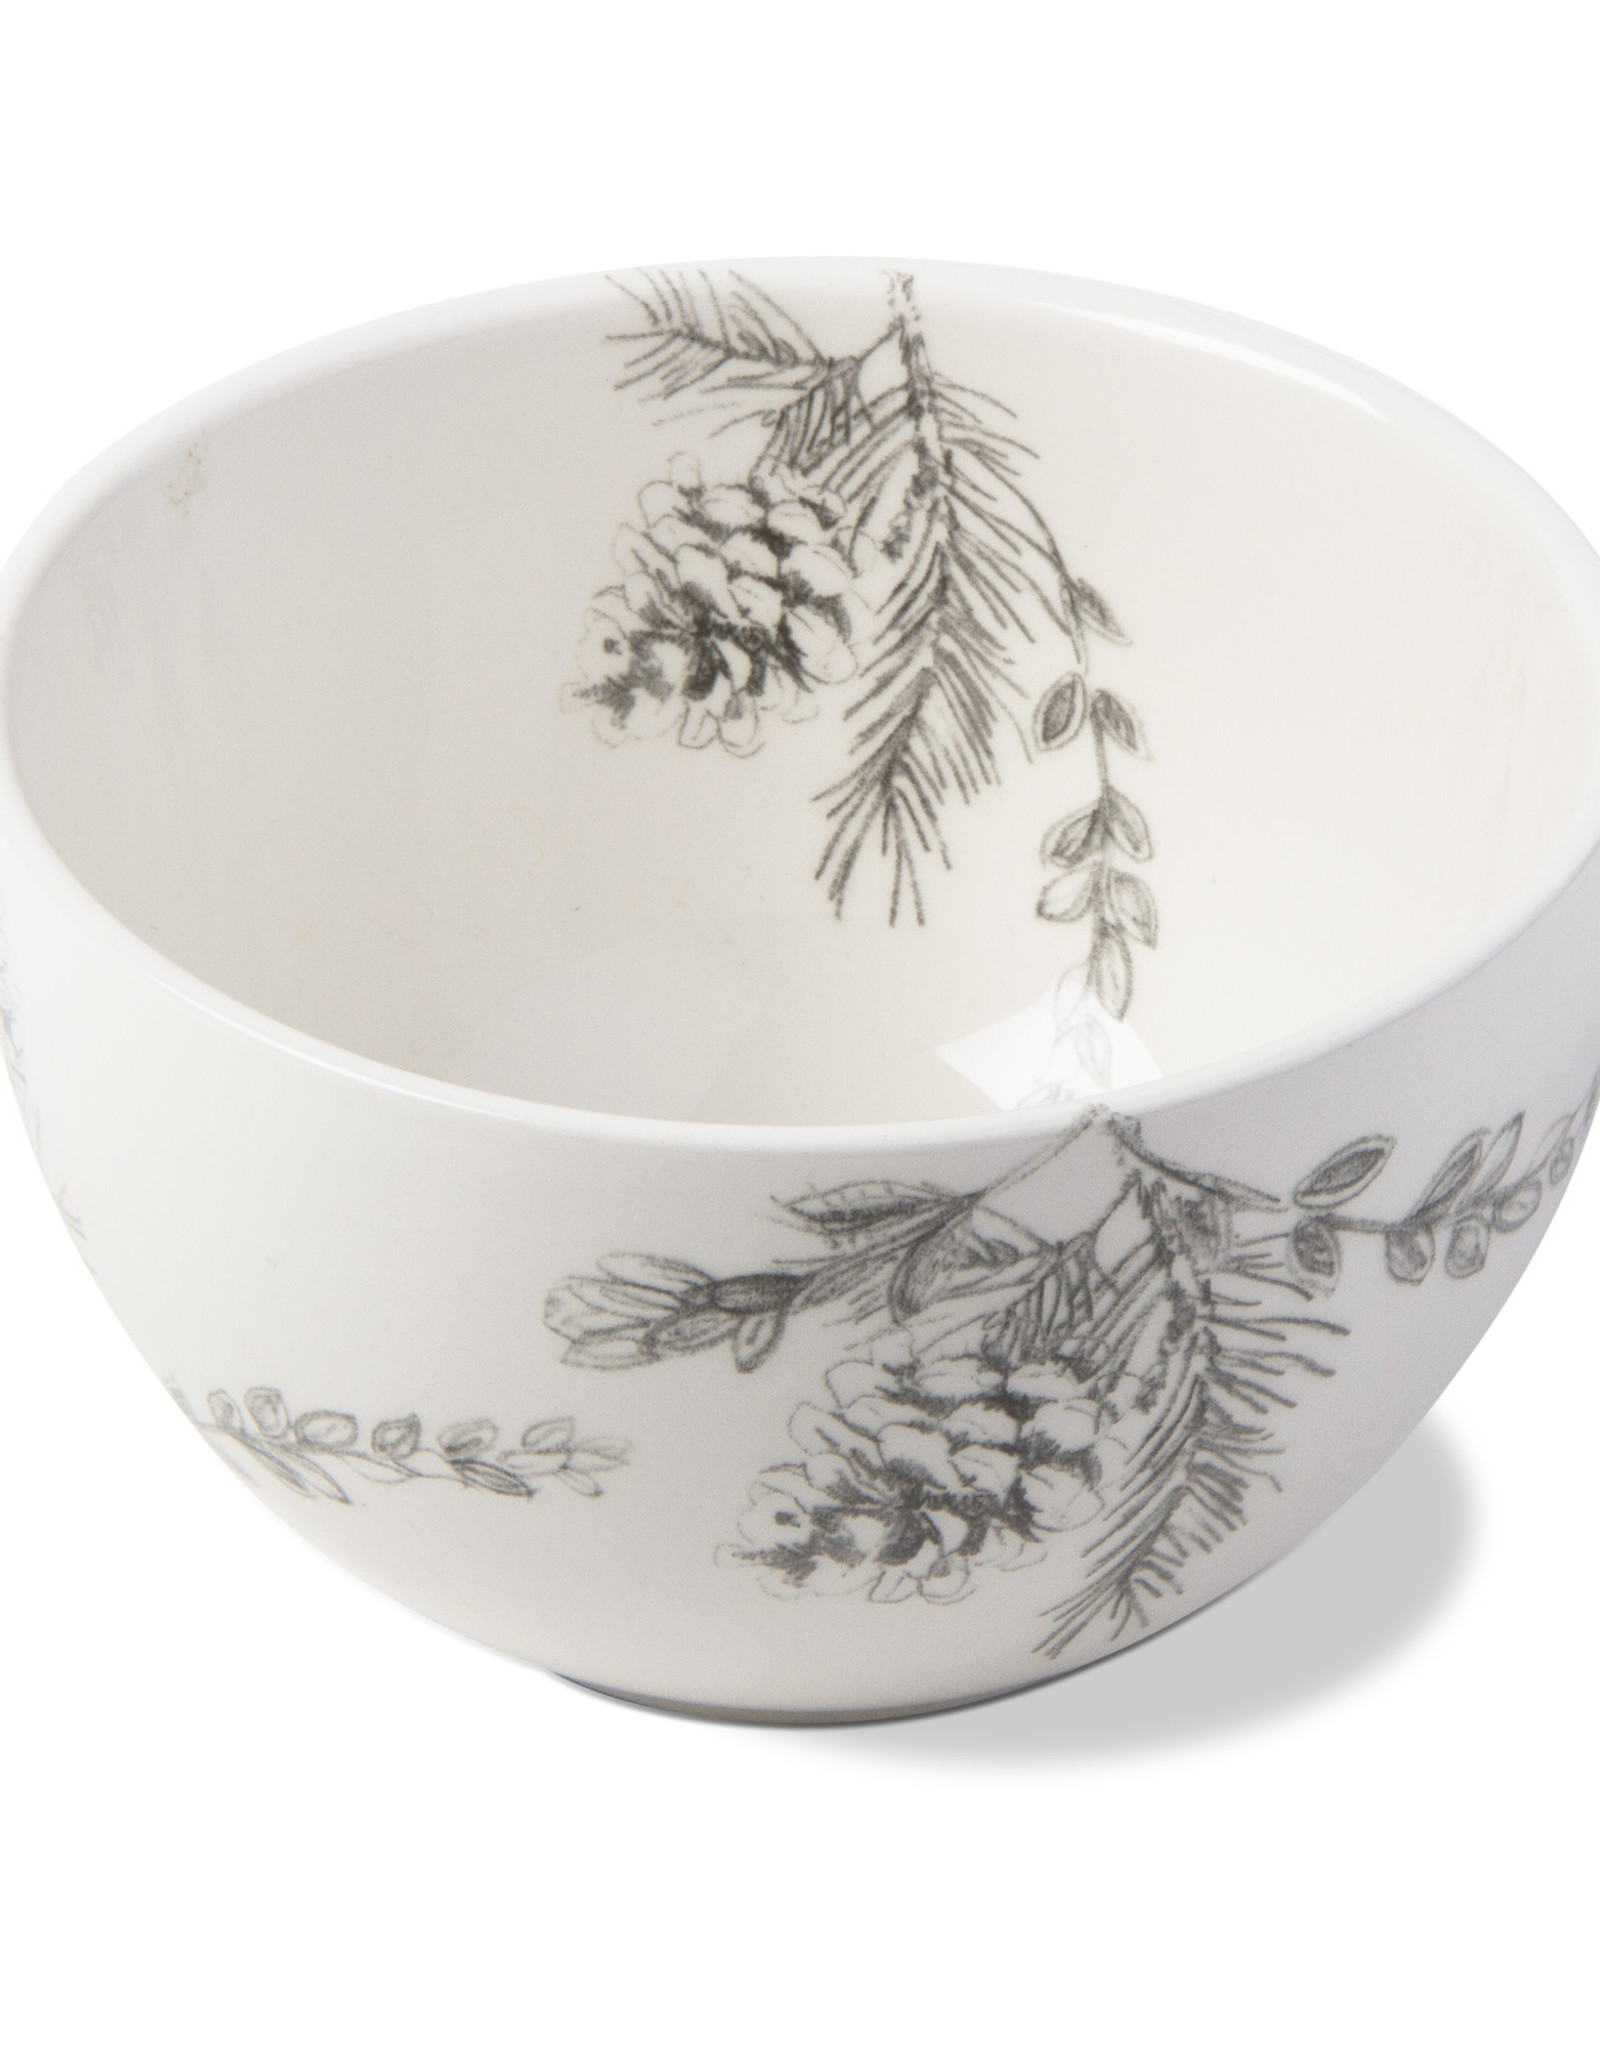 BOWL SMALL HAND DRAWN PINECONES 20 OUNCE